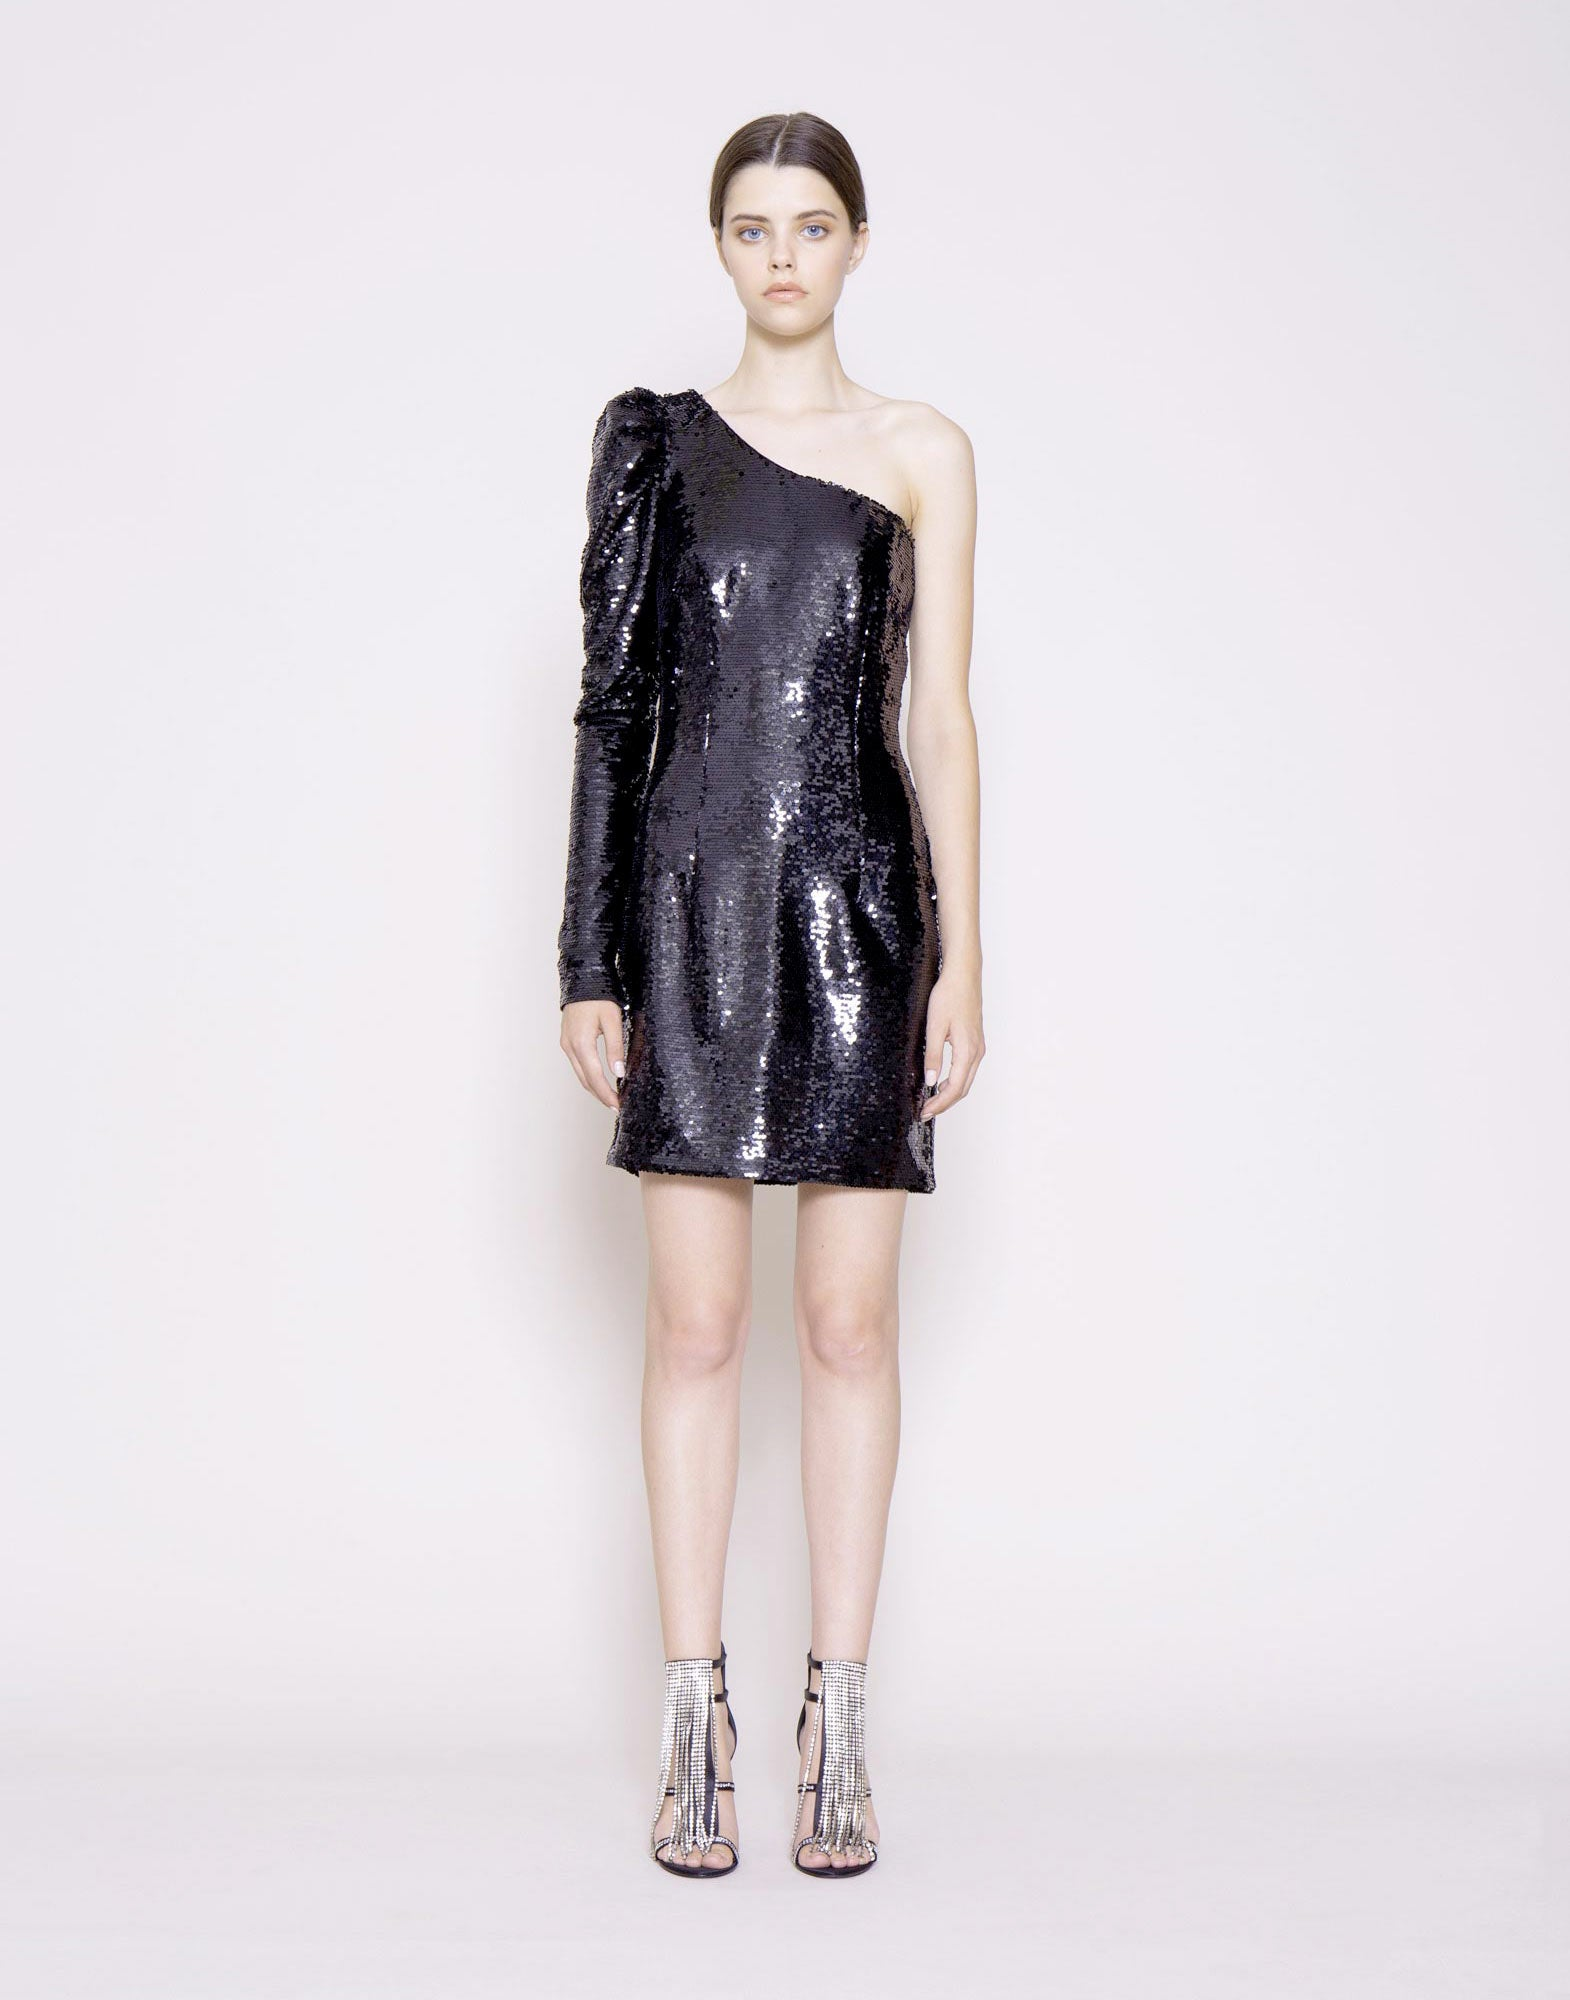 Single-shoulder minidress with all-over embroidered sequins.